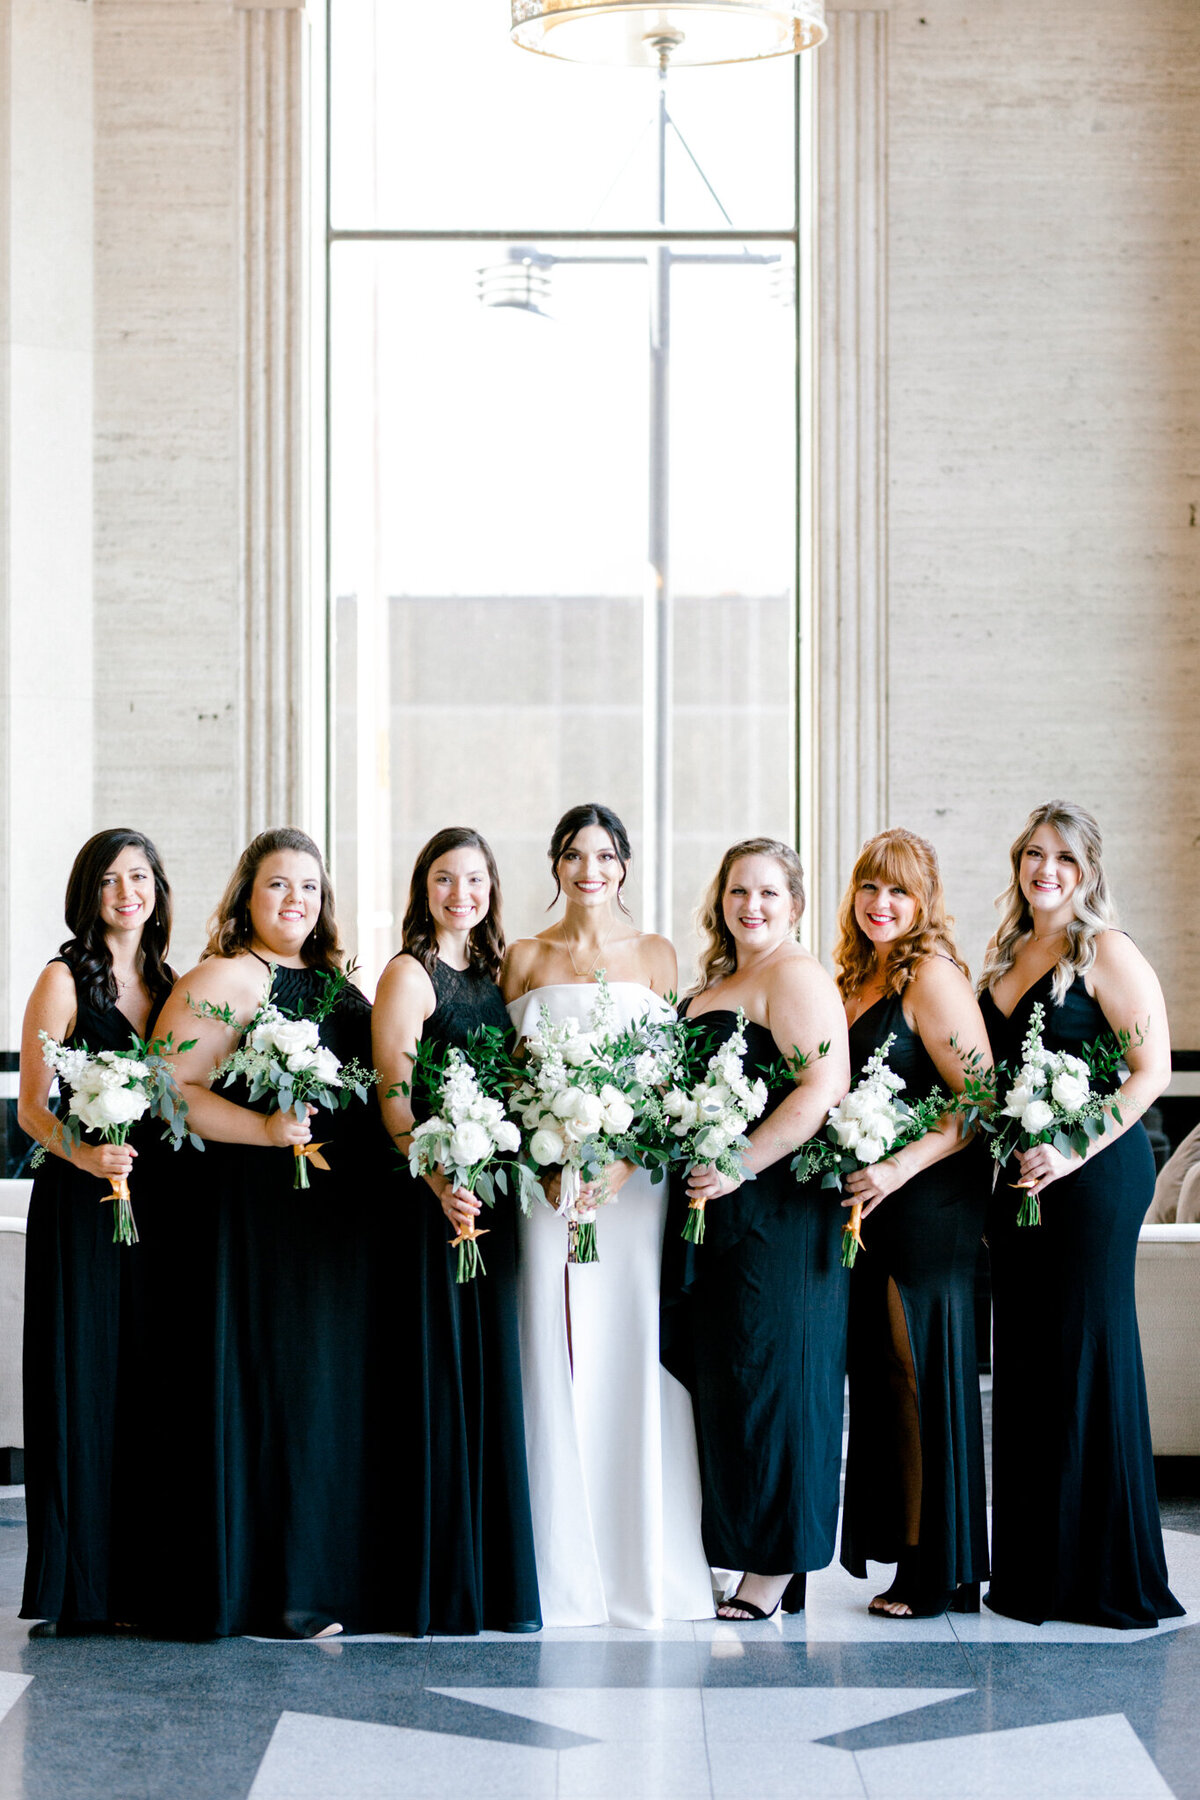 Hope & Zack's Wedding at the Carlisle Room | Dallas Wedding Photographer | Sami Kathryn Photography-34